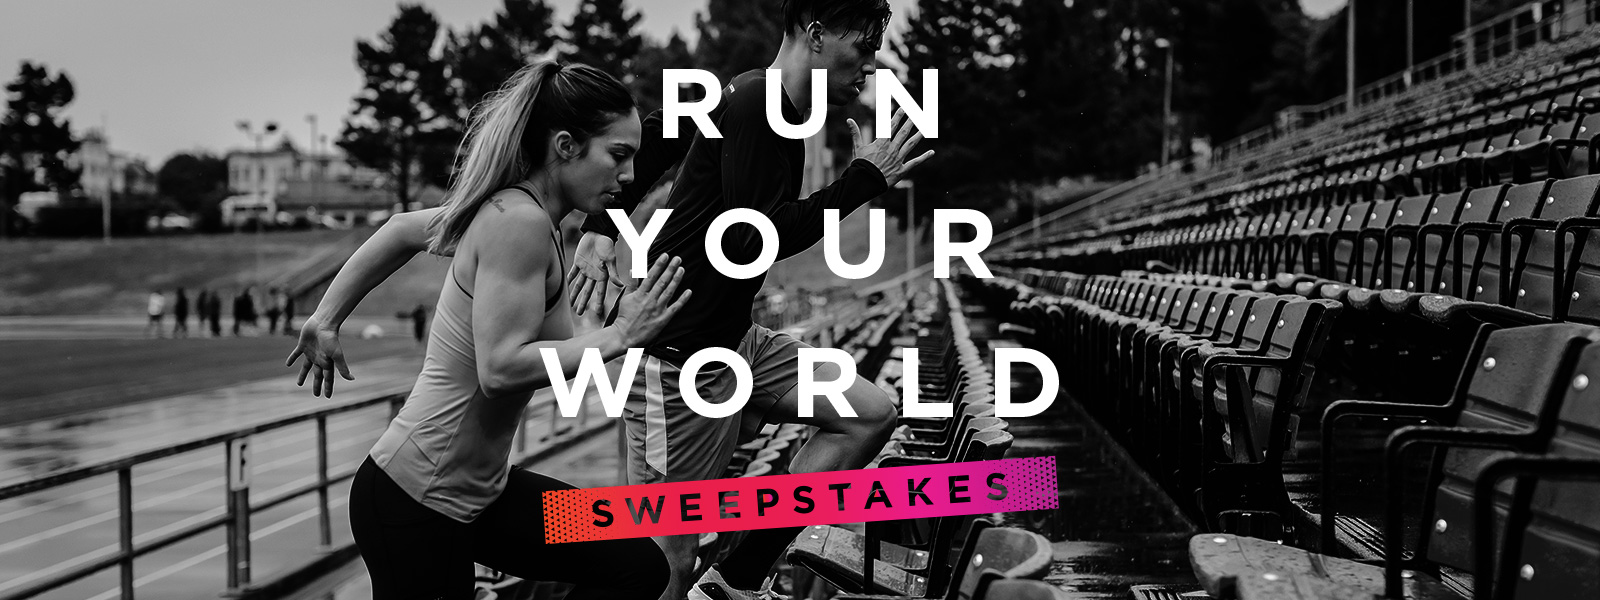 Run Your World Sweepstakes - Saucony